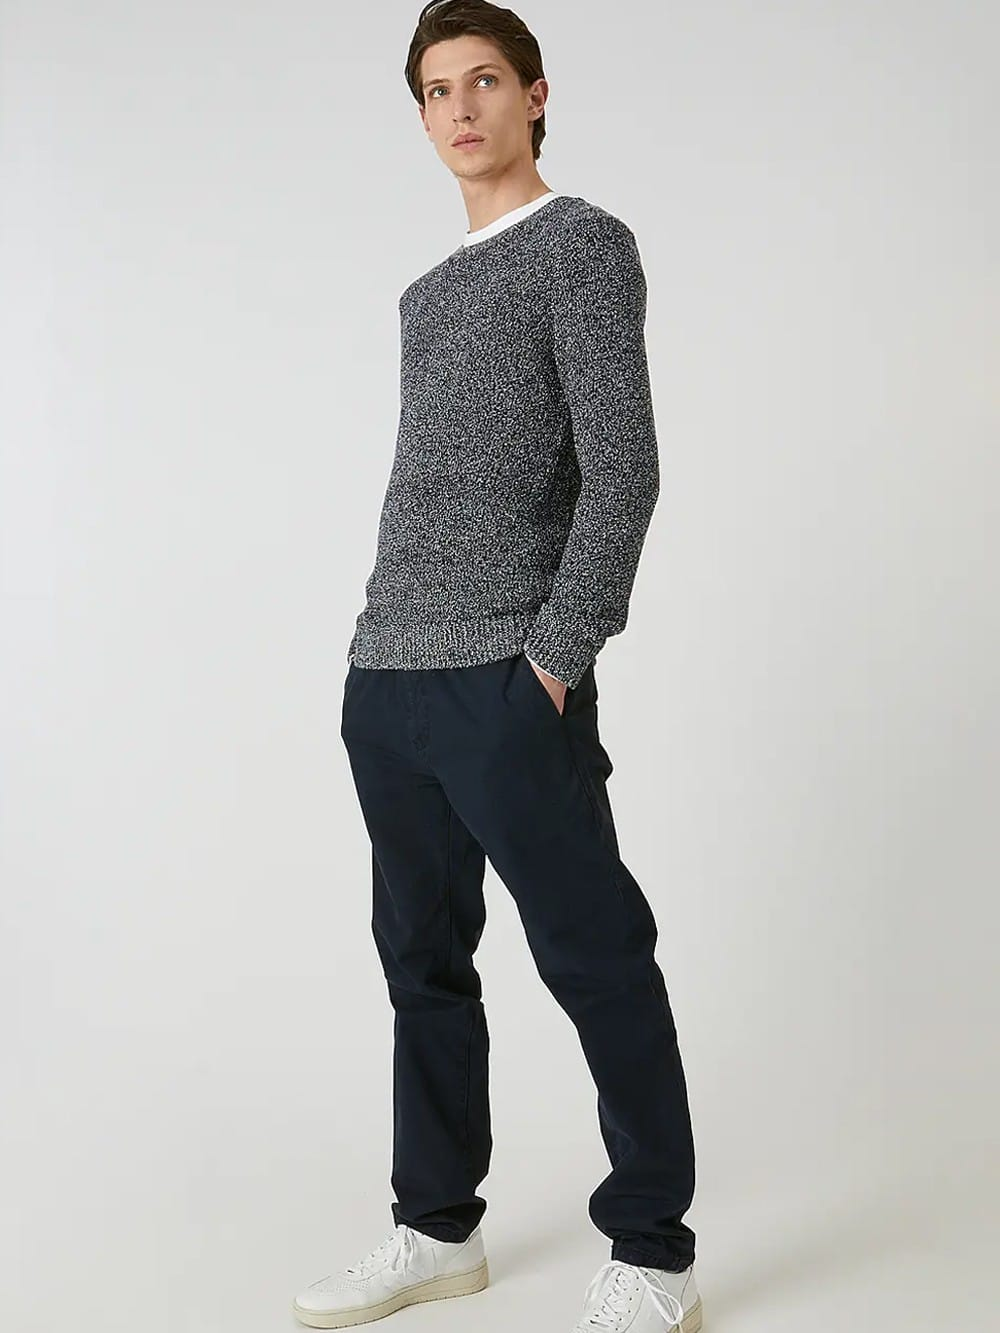 Sweater made of Organic Cotton - MICHAAL